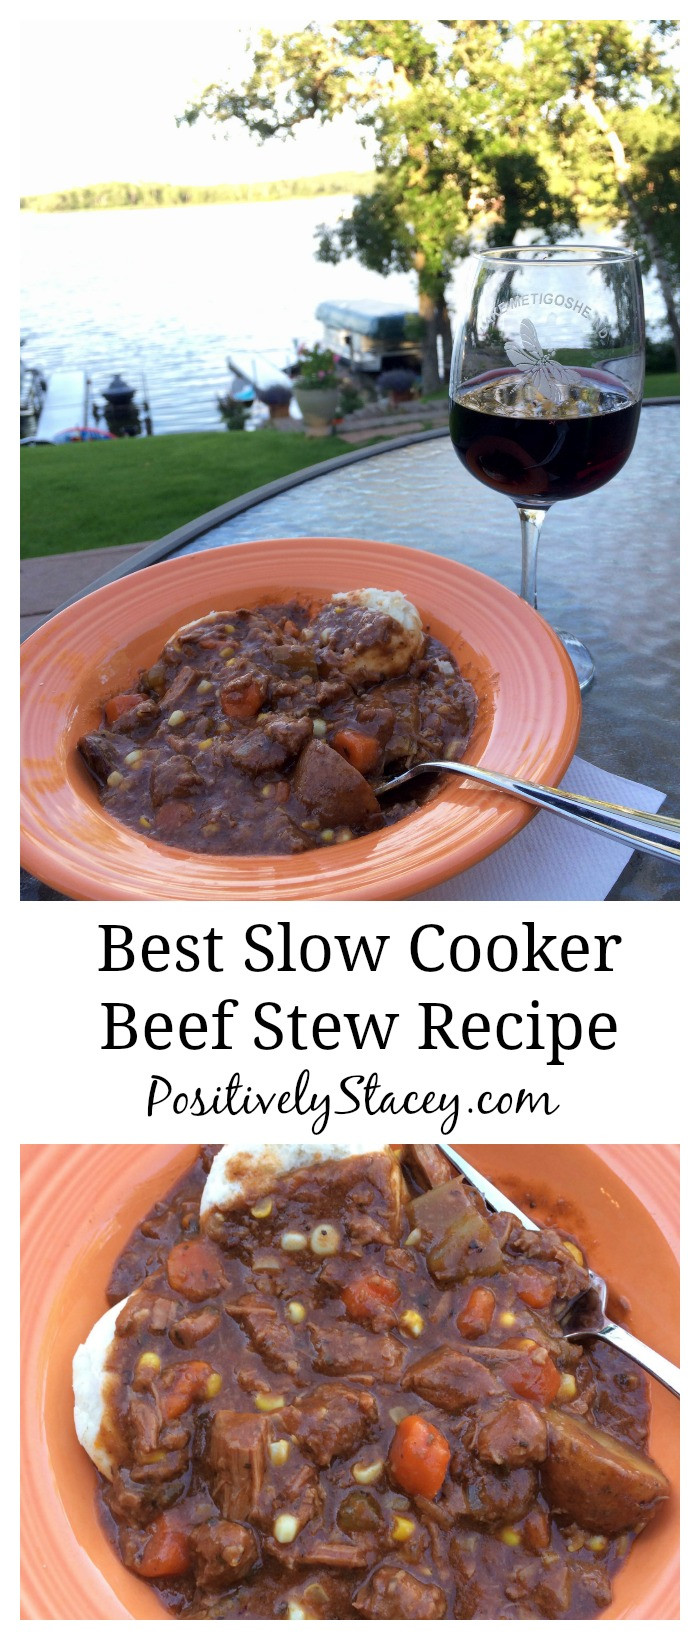 Best Slow Cooker Beef Stew  Best Slow Cooker Beef Stew Recipe Positively Stacey